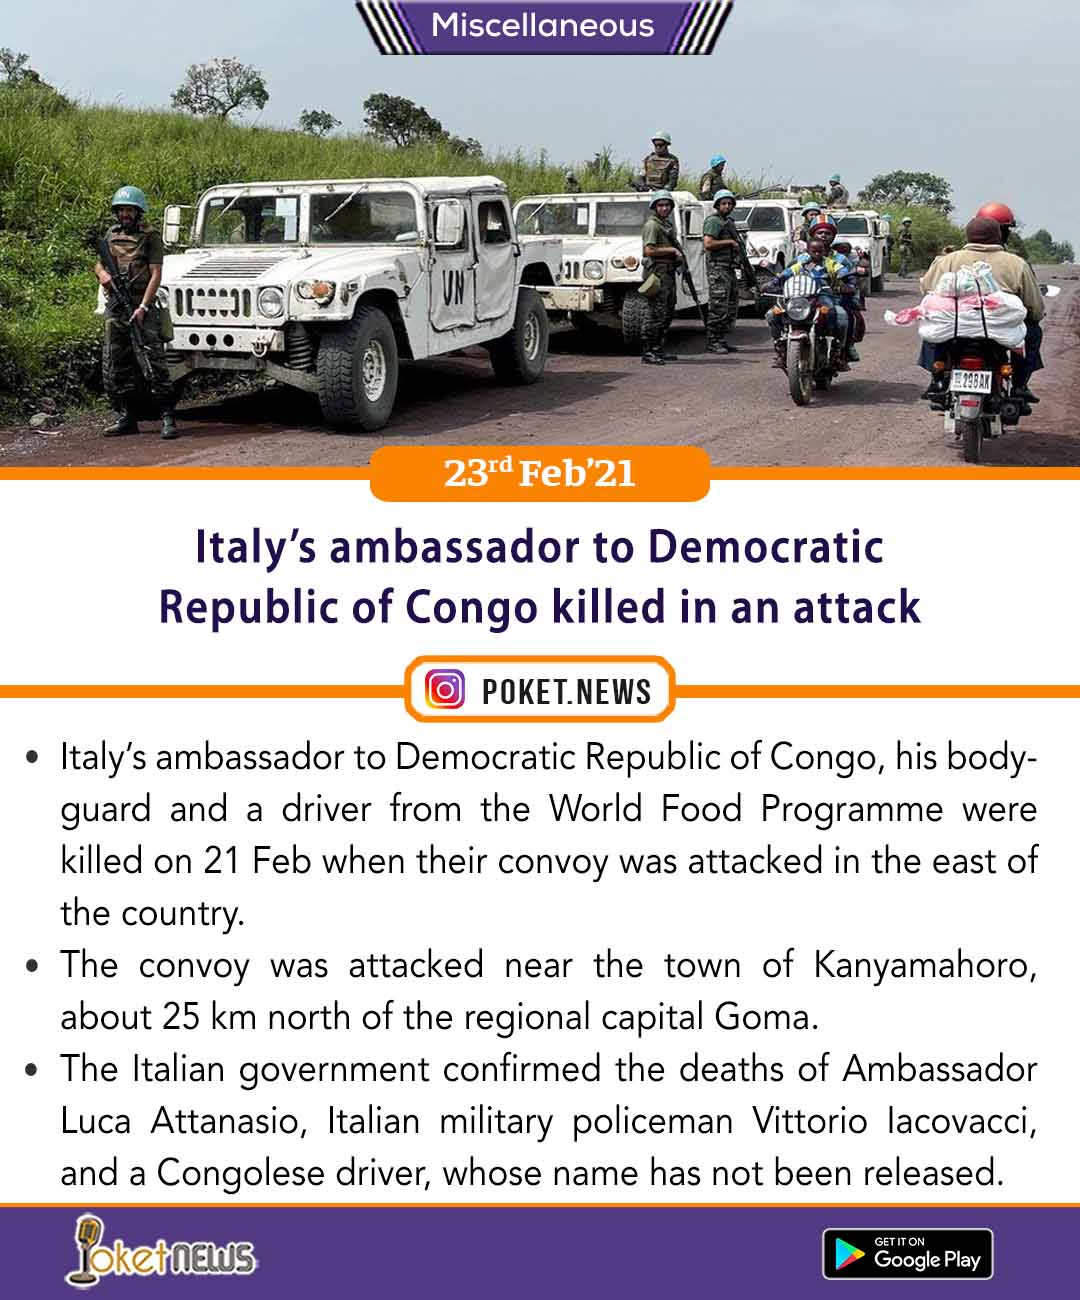 Italy's ambassador to Democratic Republic of Congo killed in an attack